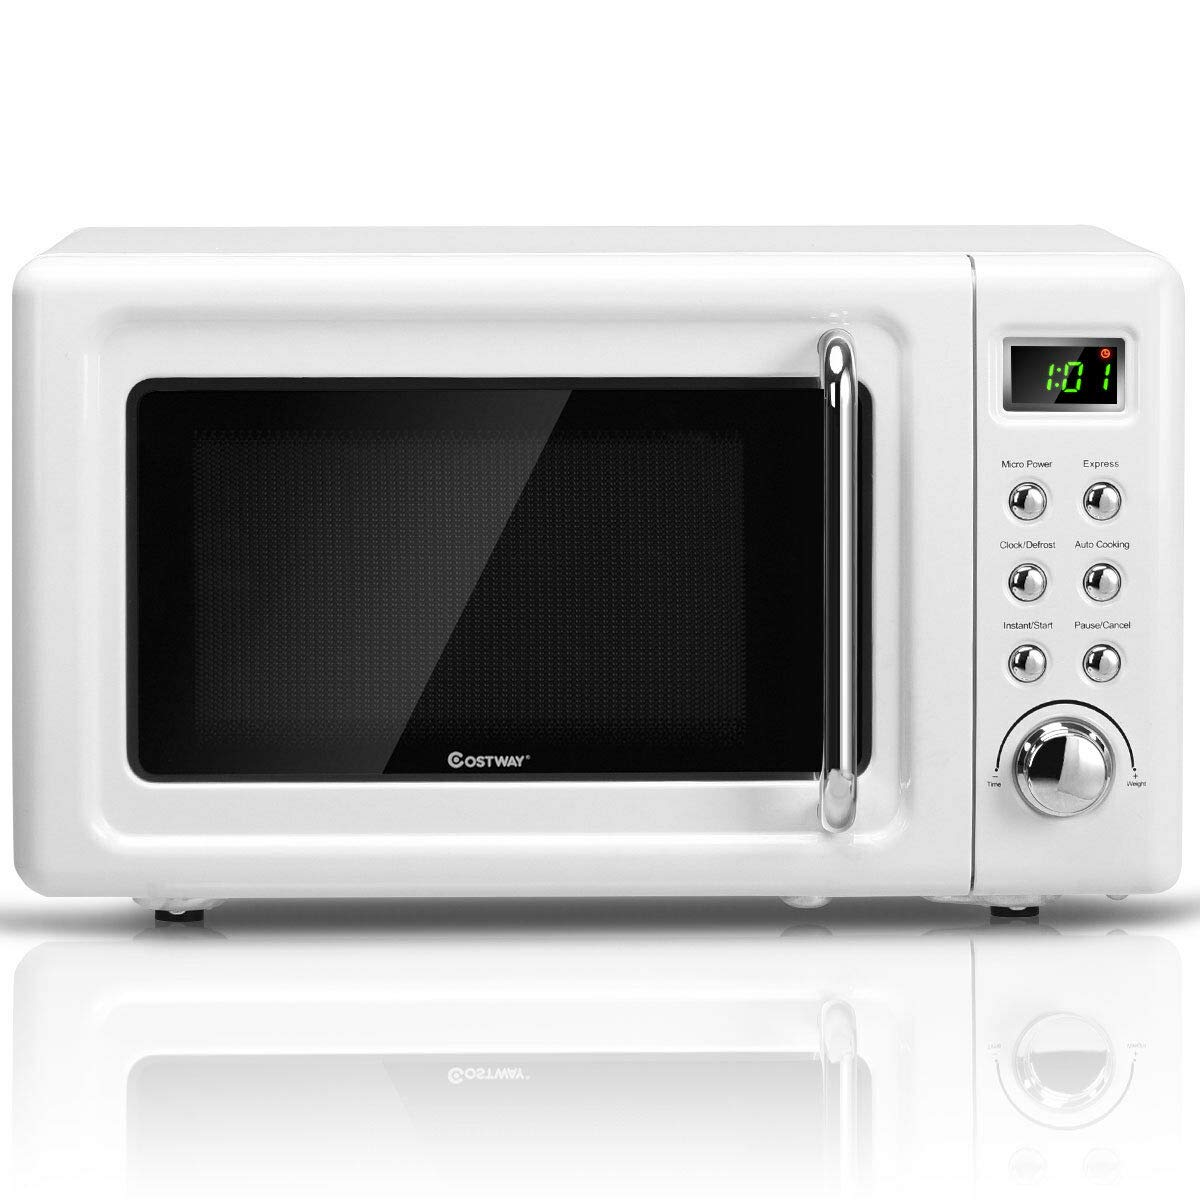 COSTWAY Retro Countertop Microwave Oven, 0.7Cu.ft, 700-Watt, Cold Rolled Steel Plate, 5 Micro Power, Defrost & Auto Cooking Function, Delayed Start Function, LED Display, Child Lock